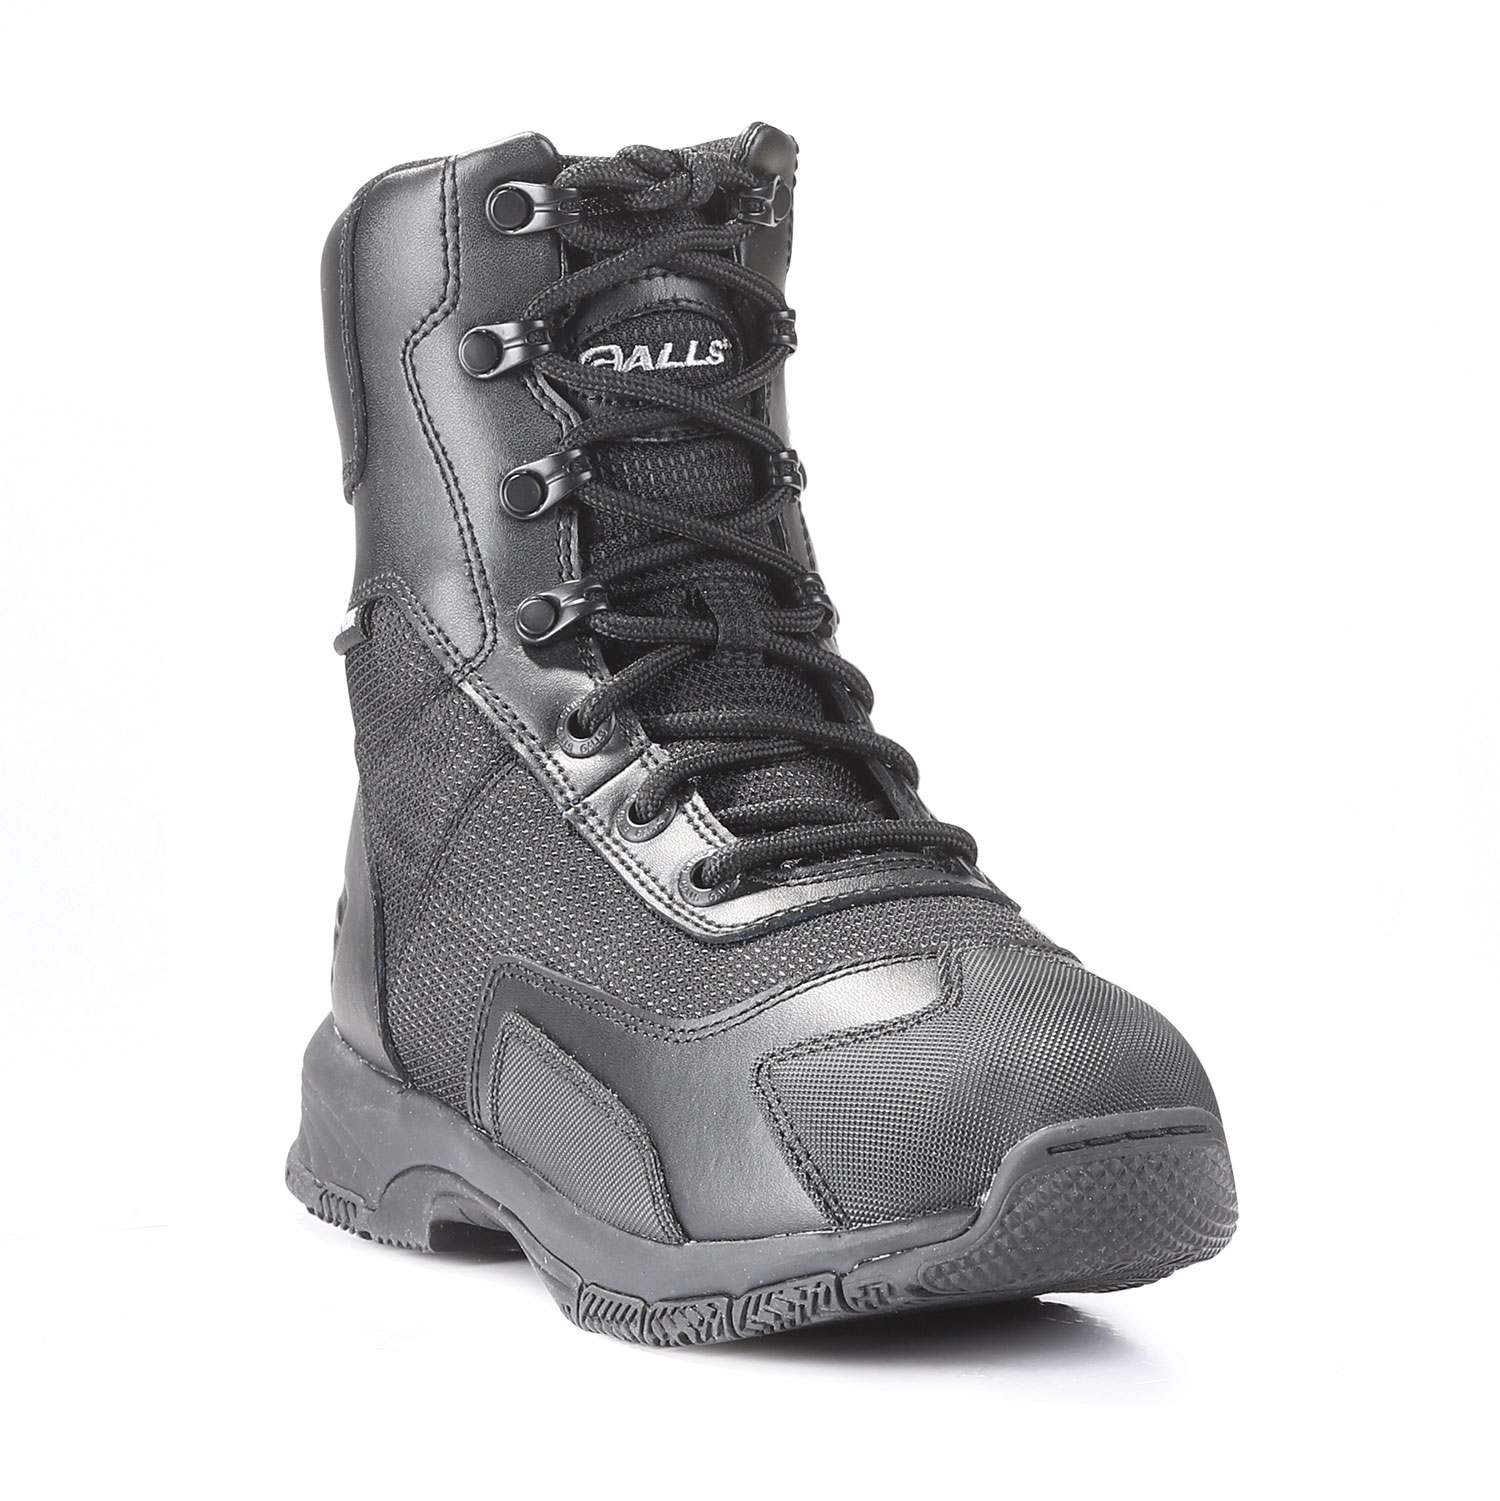 "Galls G-TAC Athletic 8"" Side-Zip Waterproof Boot"